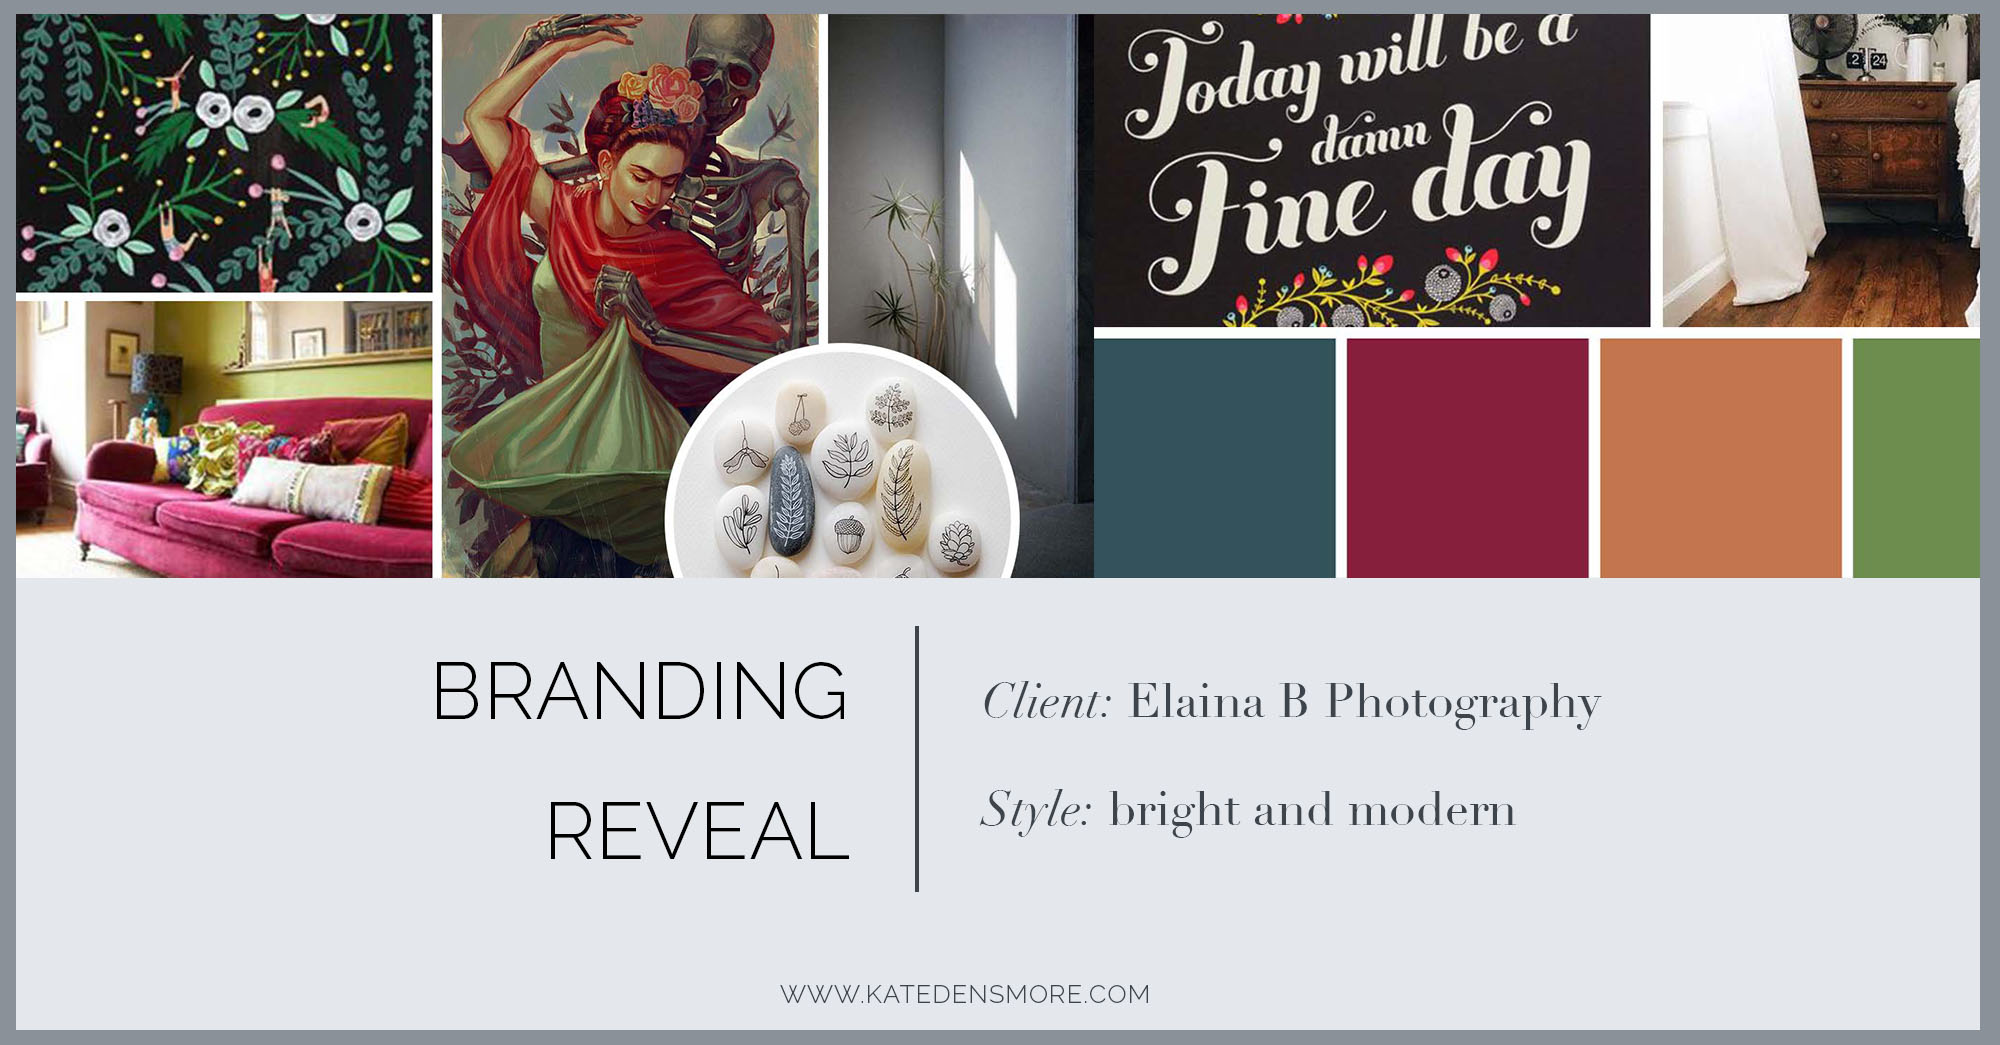 branding reveal board for a bright, modern photography brand